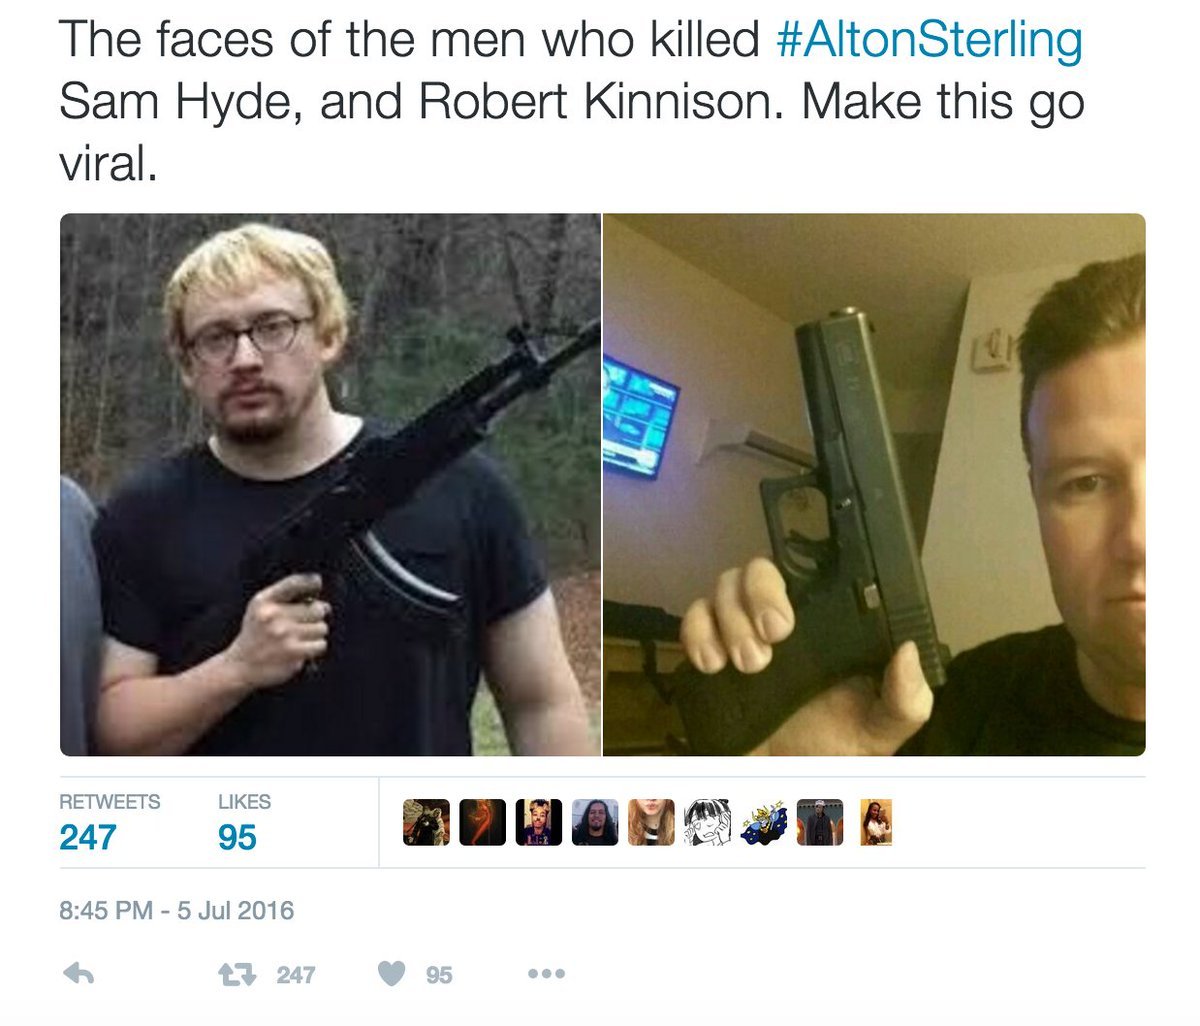 Brandon Wall On Twitter Trolls Are Back At It Pointing To Sam Hyde For The Death Of Altonsterling Evergreen Hoax Https T Co Hmky43bbu7 37,301 likes · 40 talking about this. brandon wall on twitter trolls are